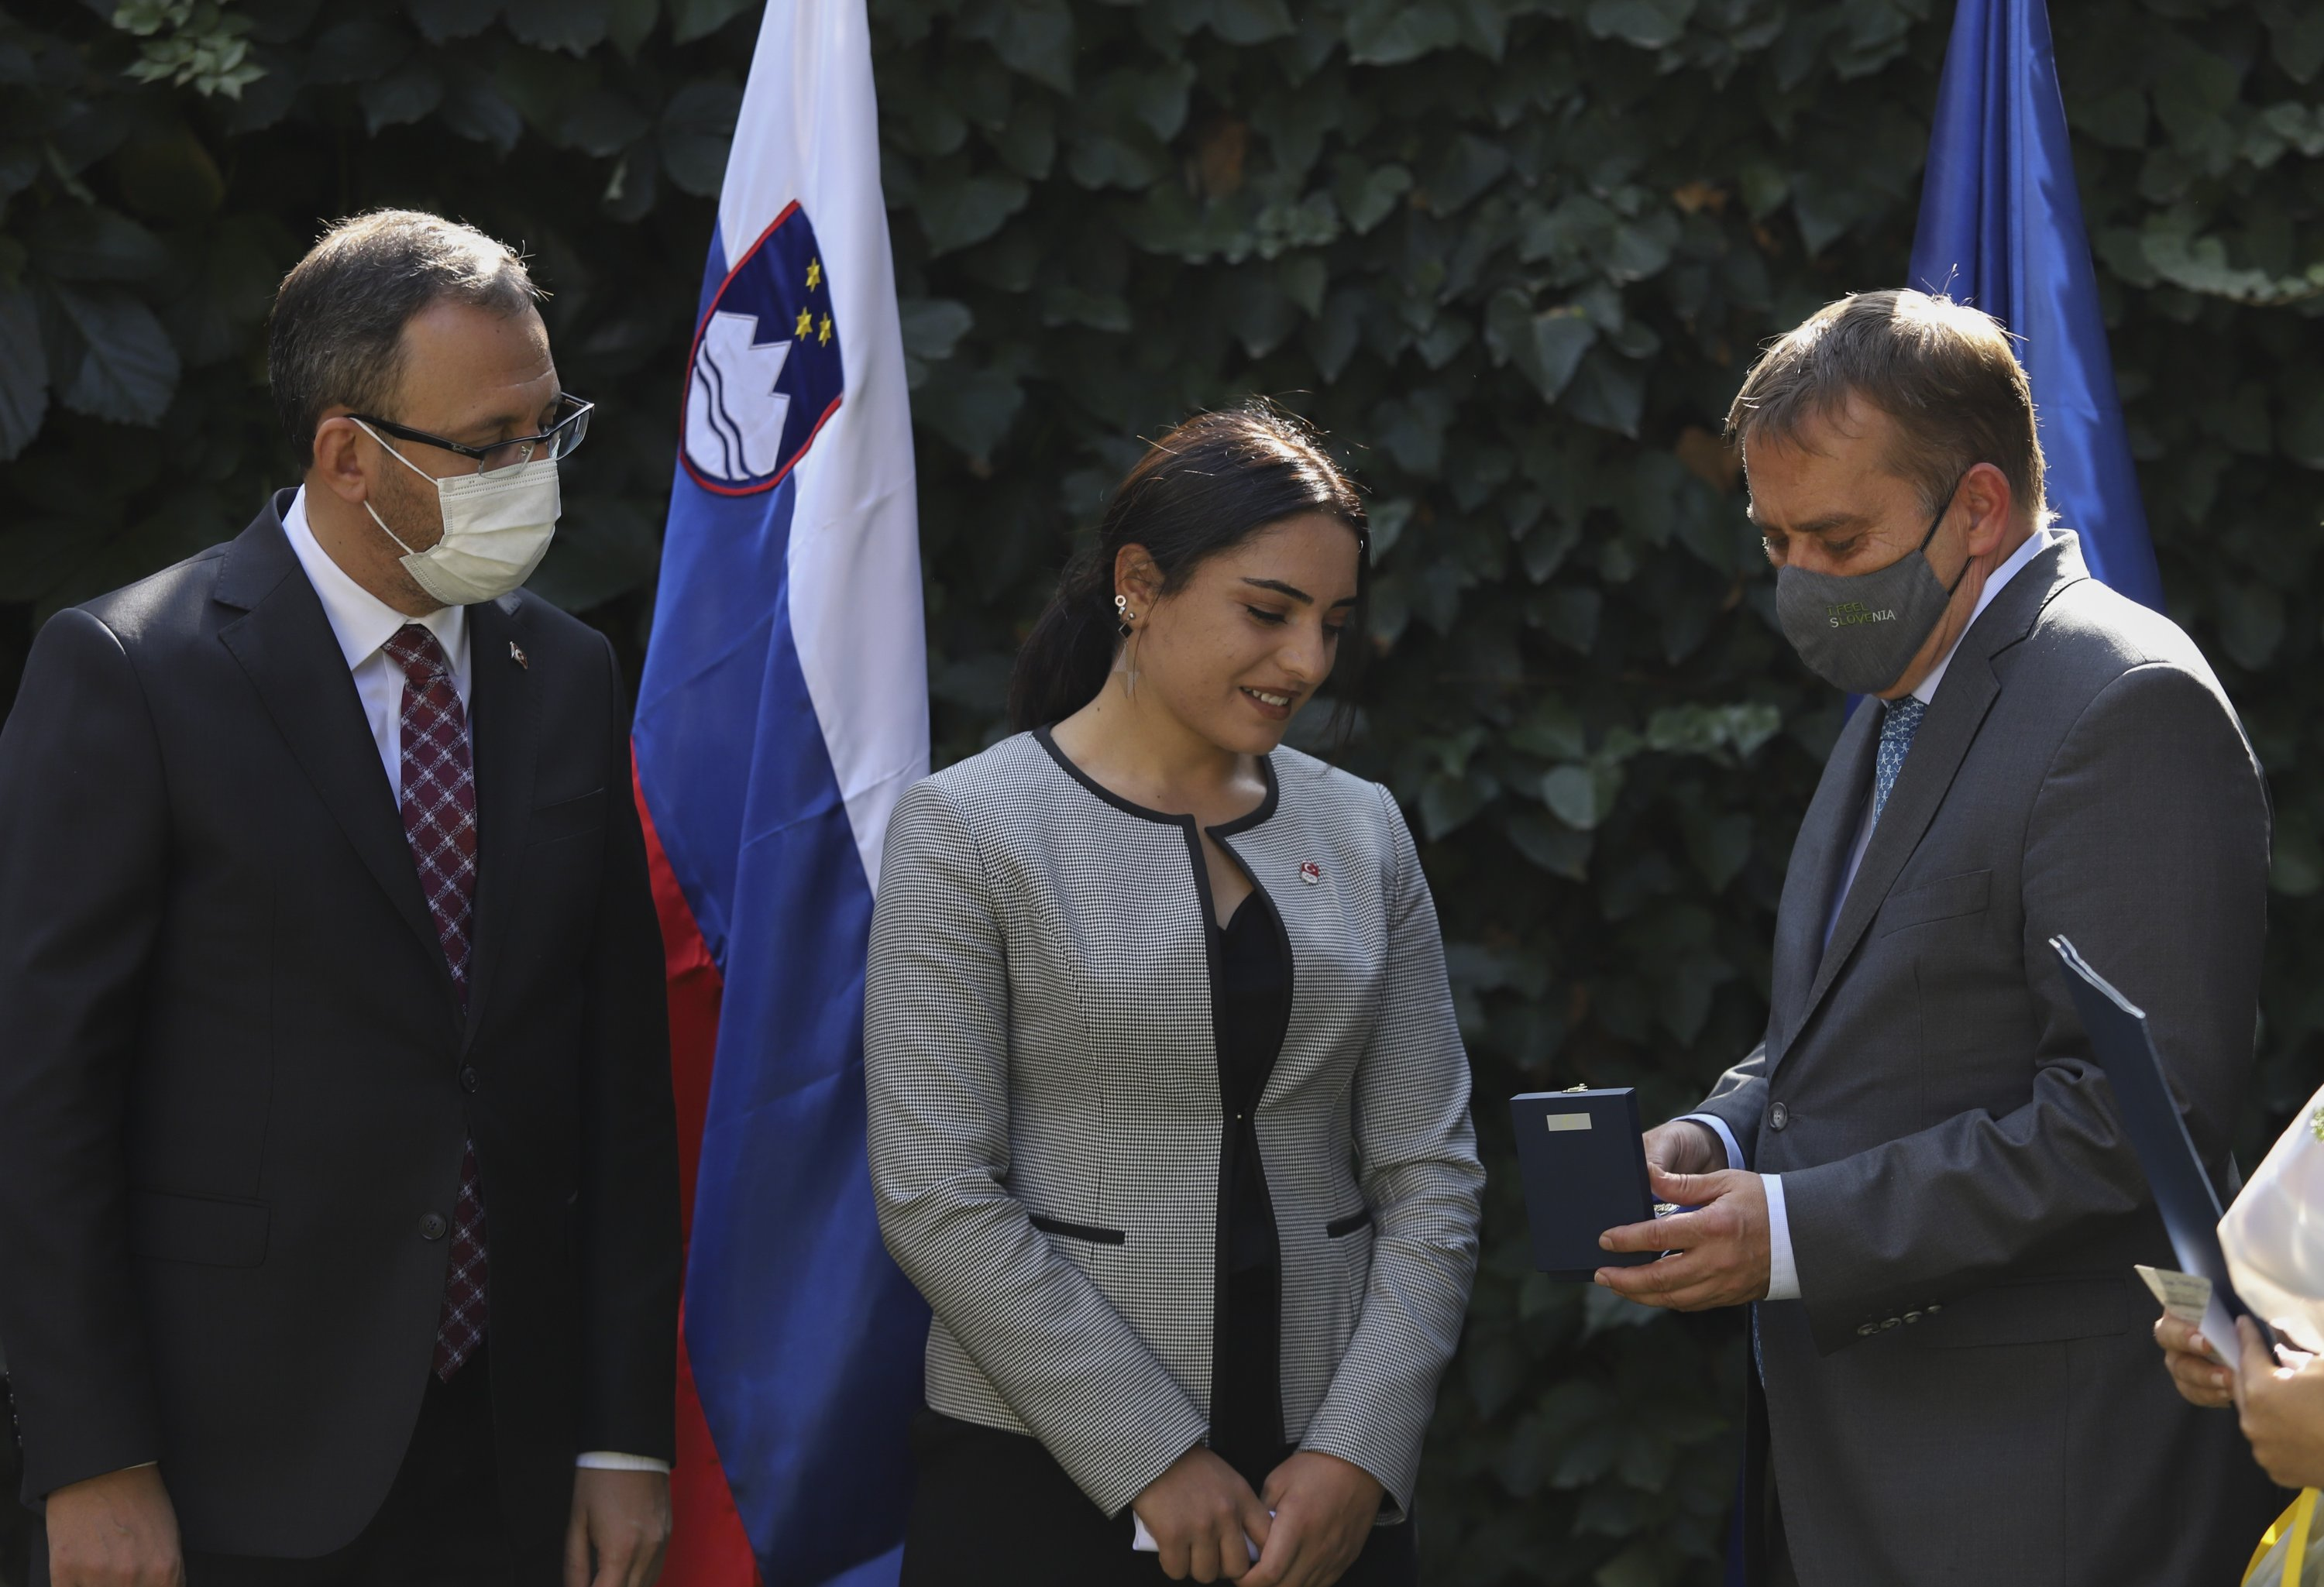 Young Turkish skier awarded by Slovenia after saving child's life